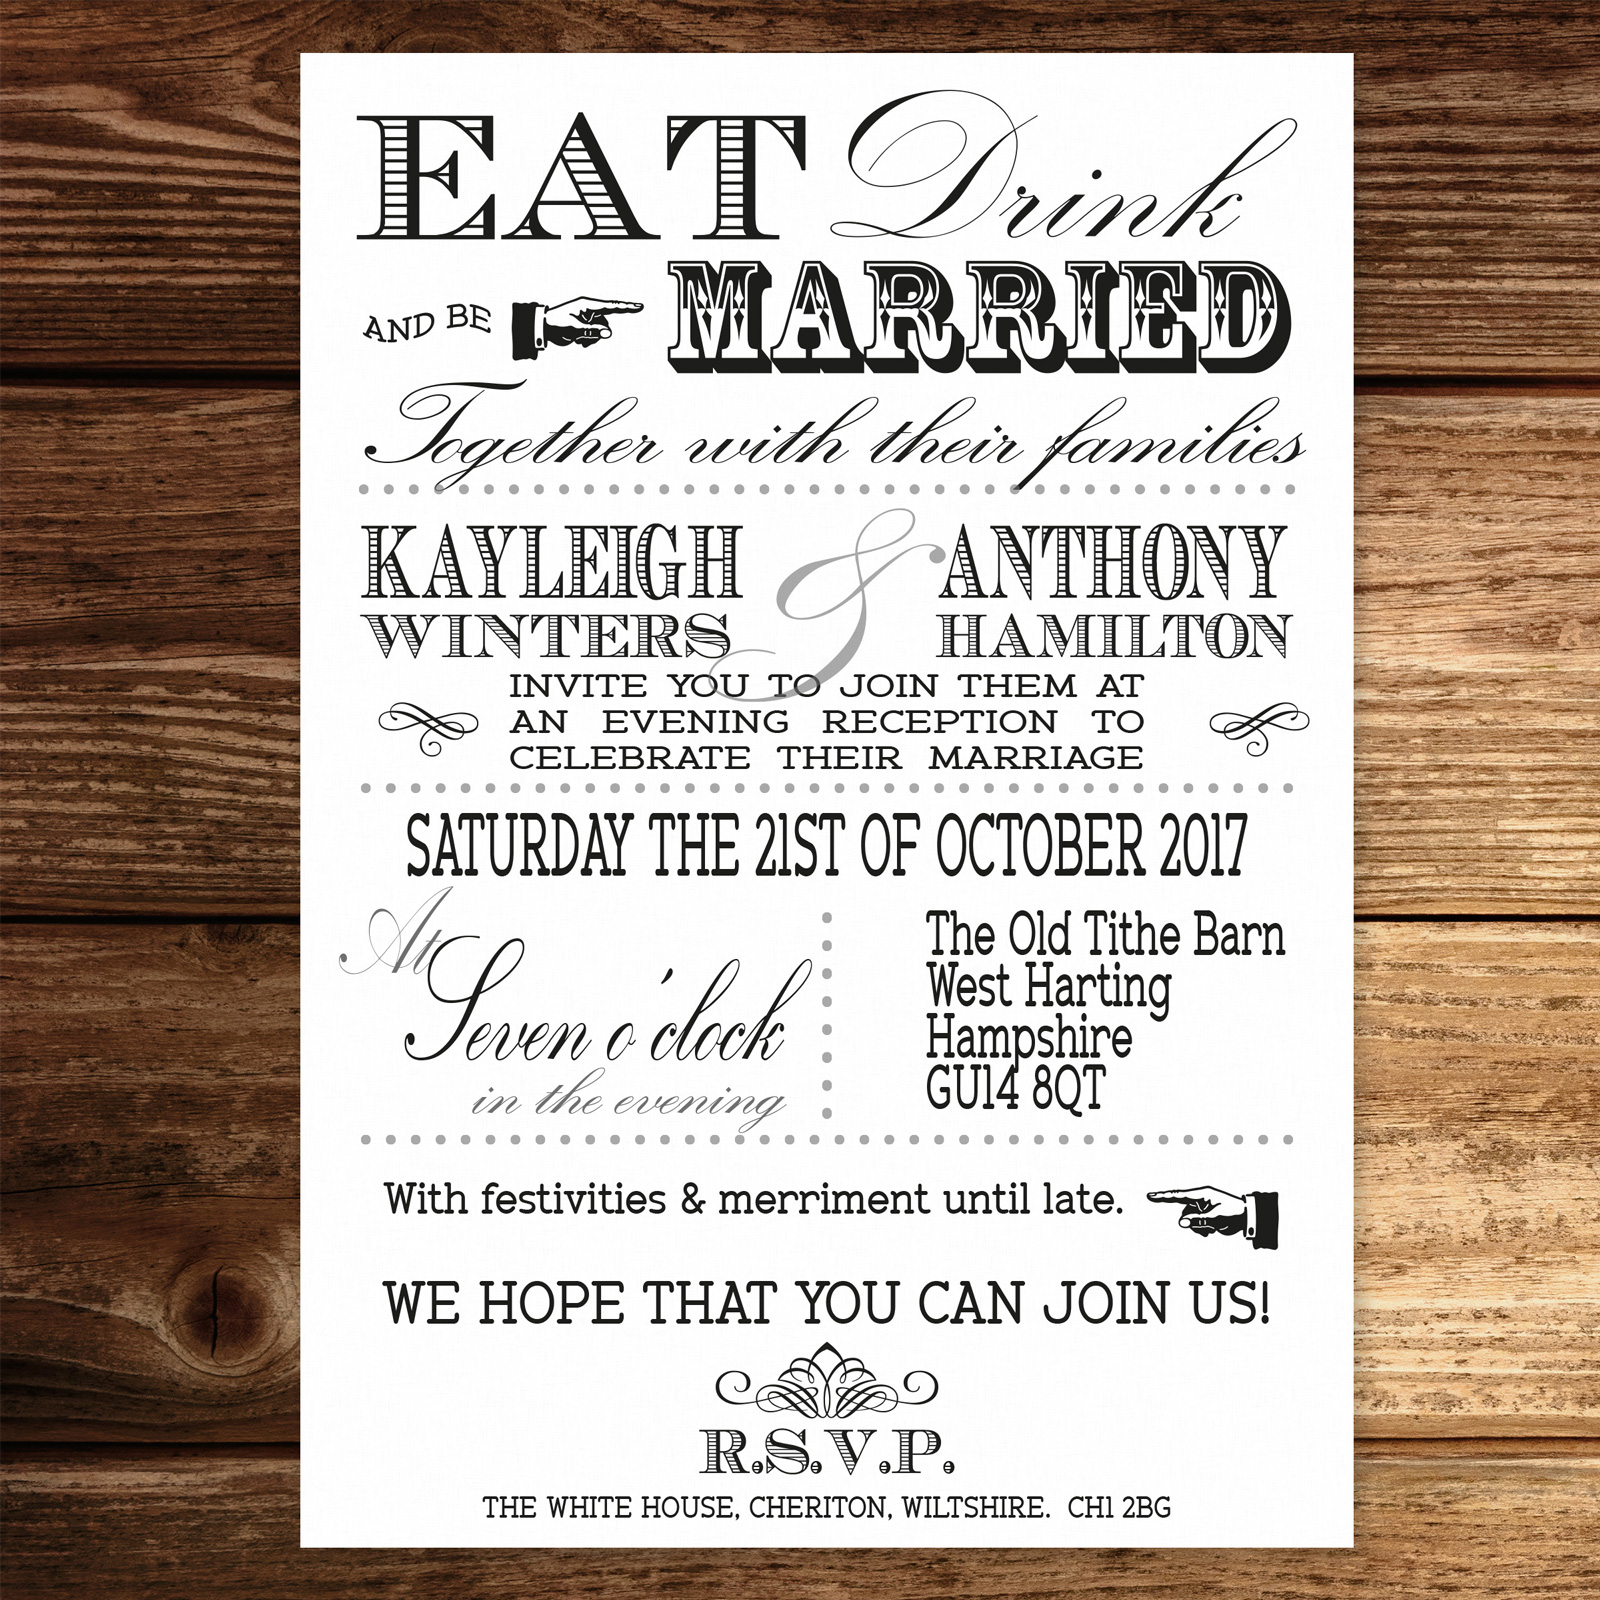 Vintage Fayre Black on White Card - Evening Invitation